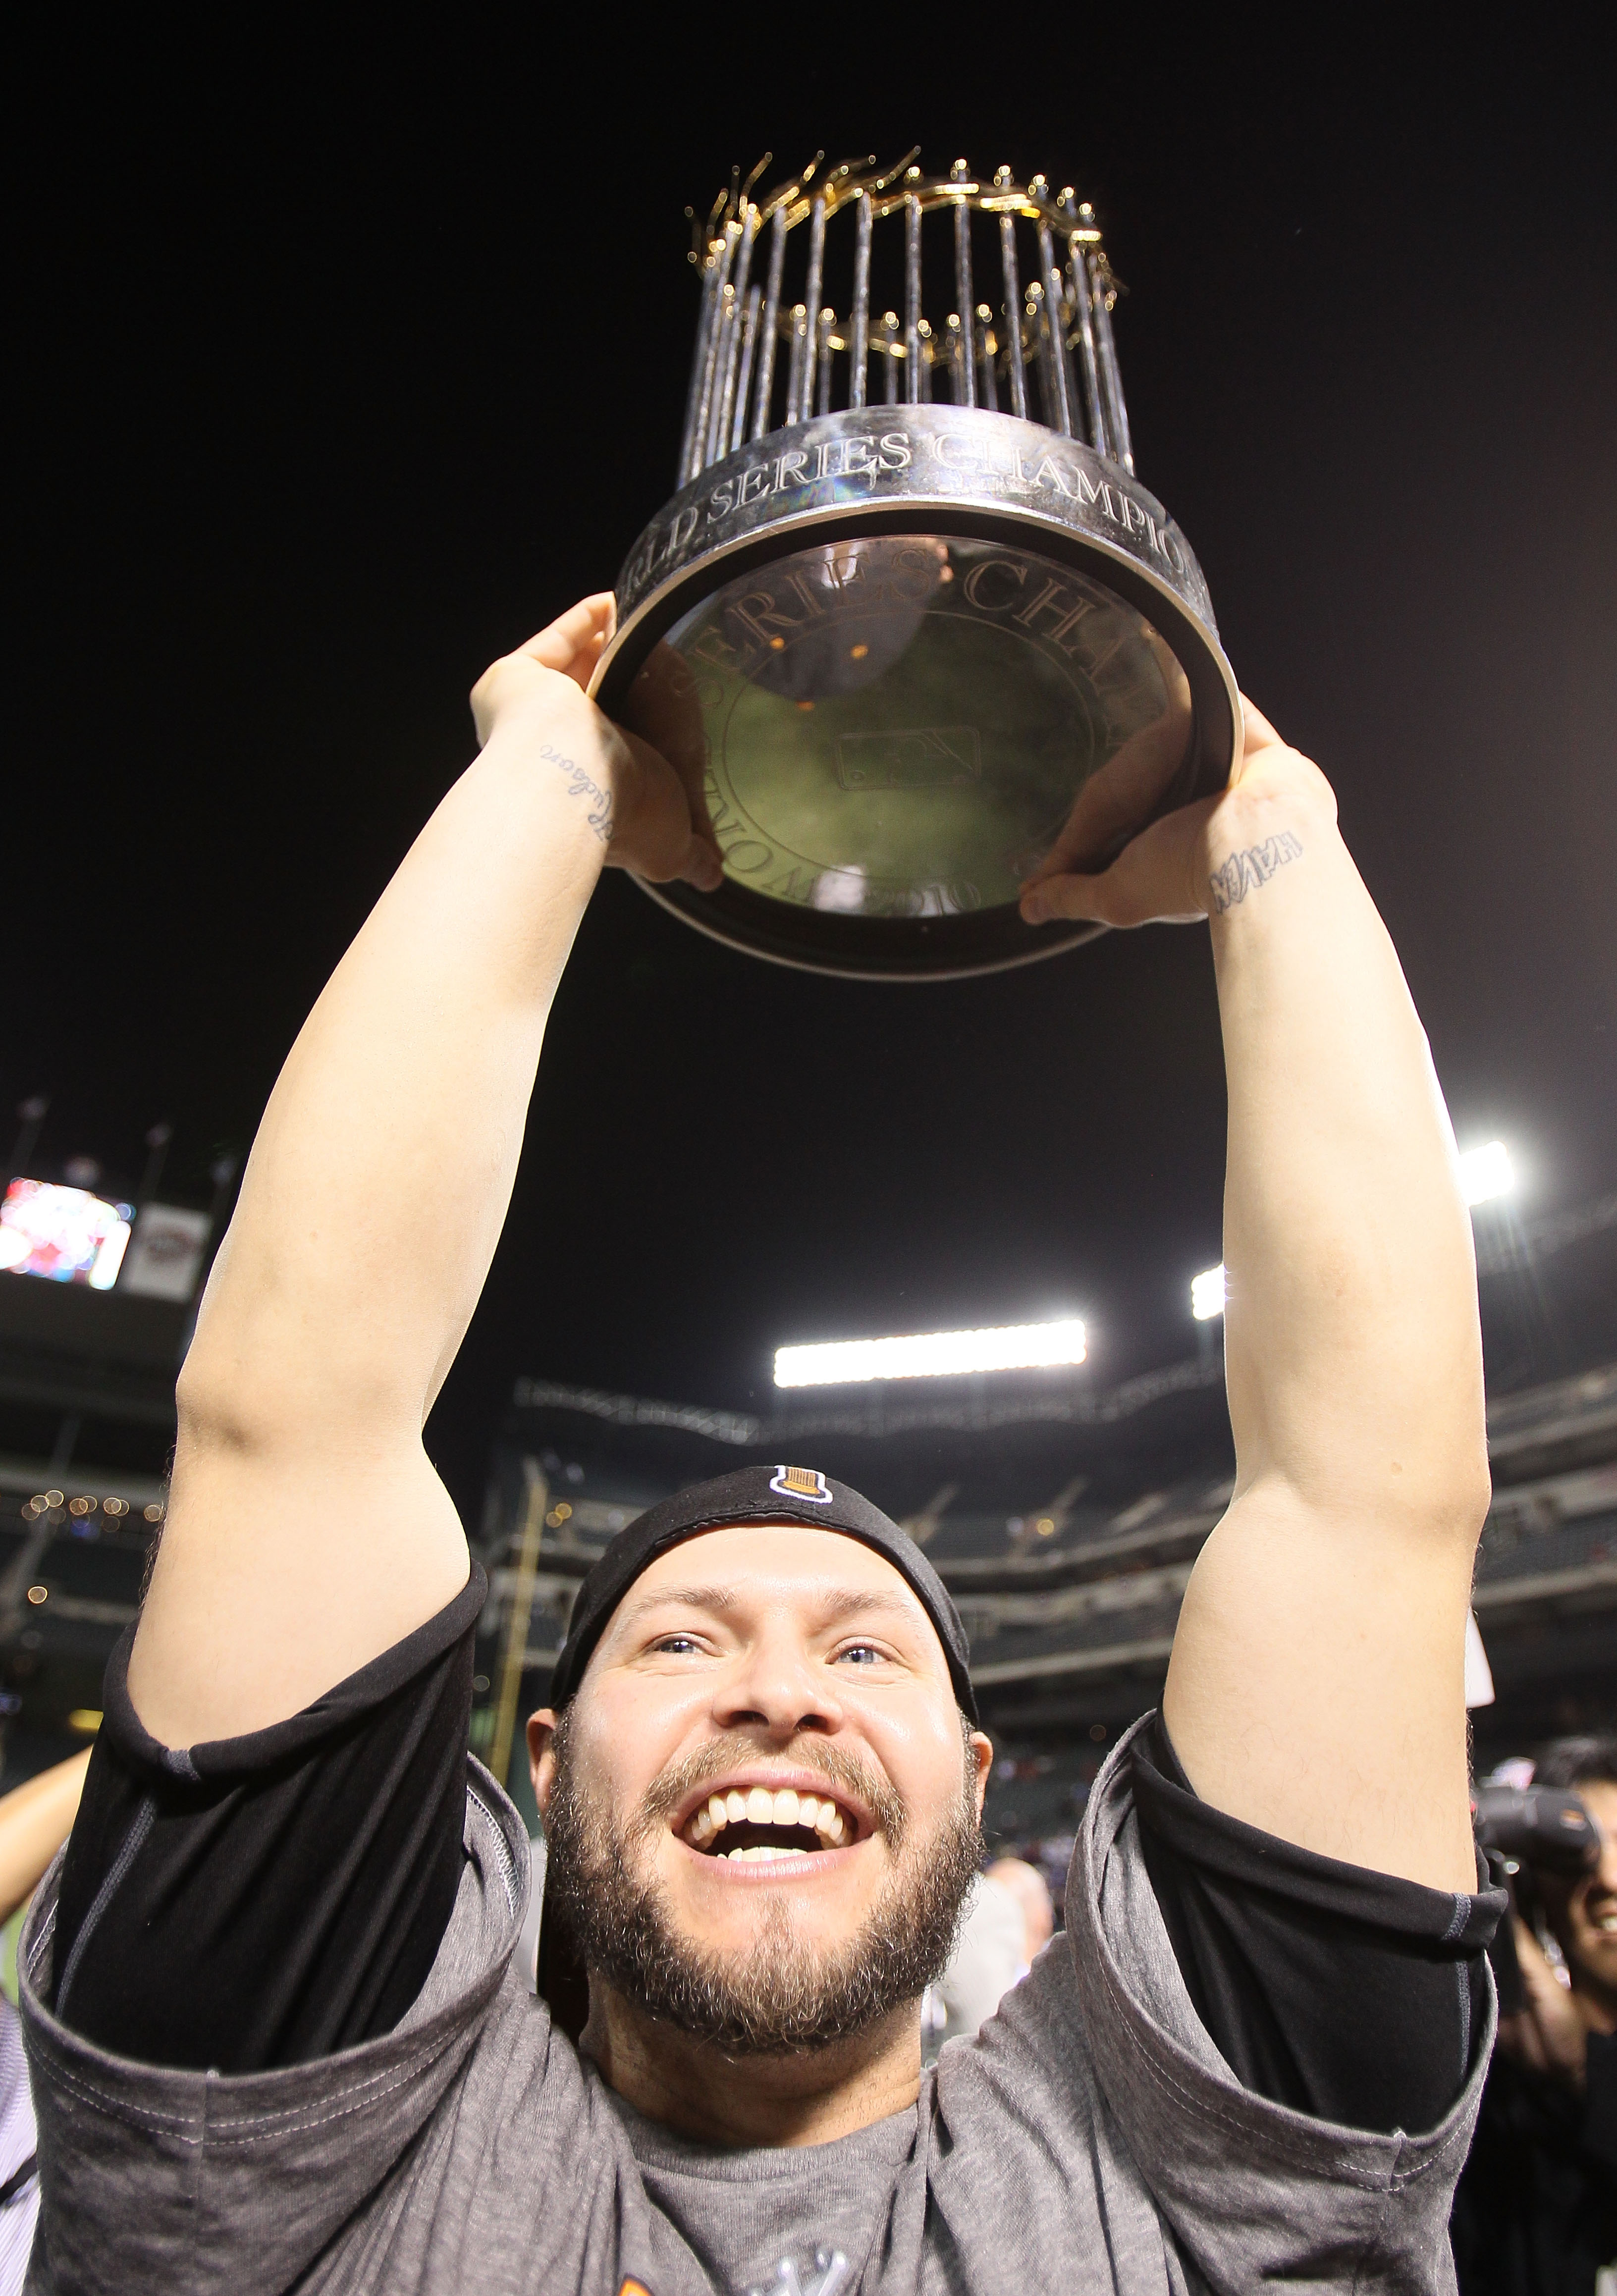 ARLINGTON, TX - NOVEMBER 01:  Cody Ross #13 of the San Francisco Giants celebrates with the World Series Championship trophy after the Giants won 3-1 the Texas Rangers in Game Five of the 2010 MLB World Series at Rangers Ballpark in Arlington on November